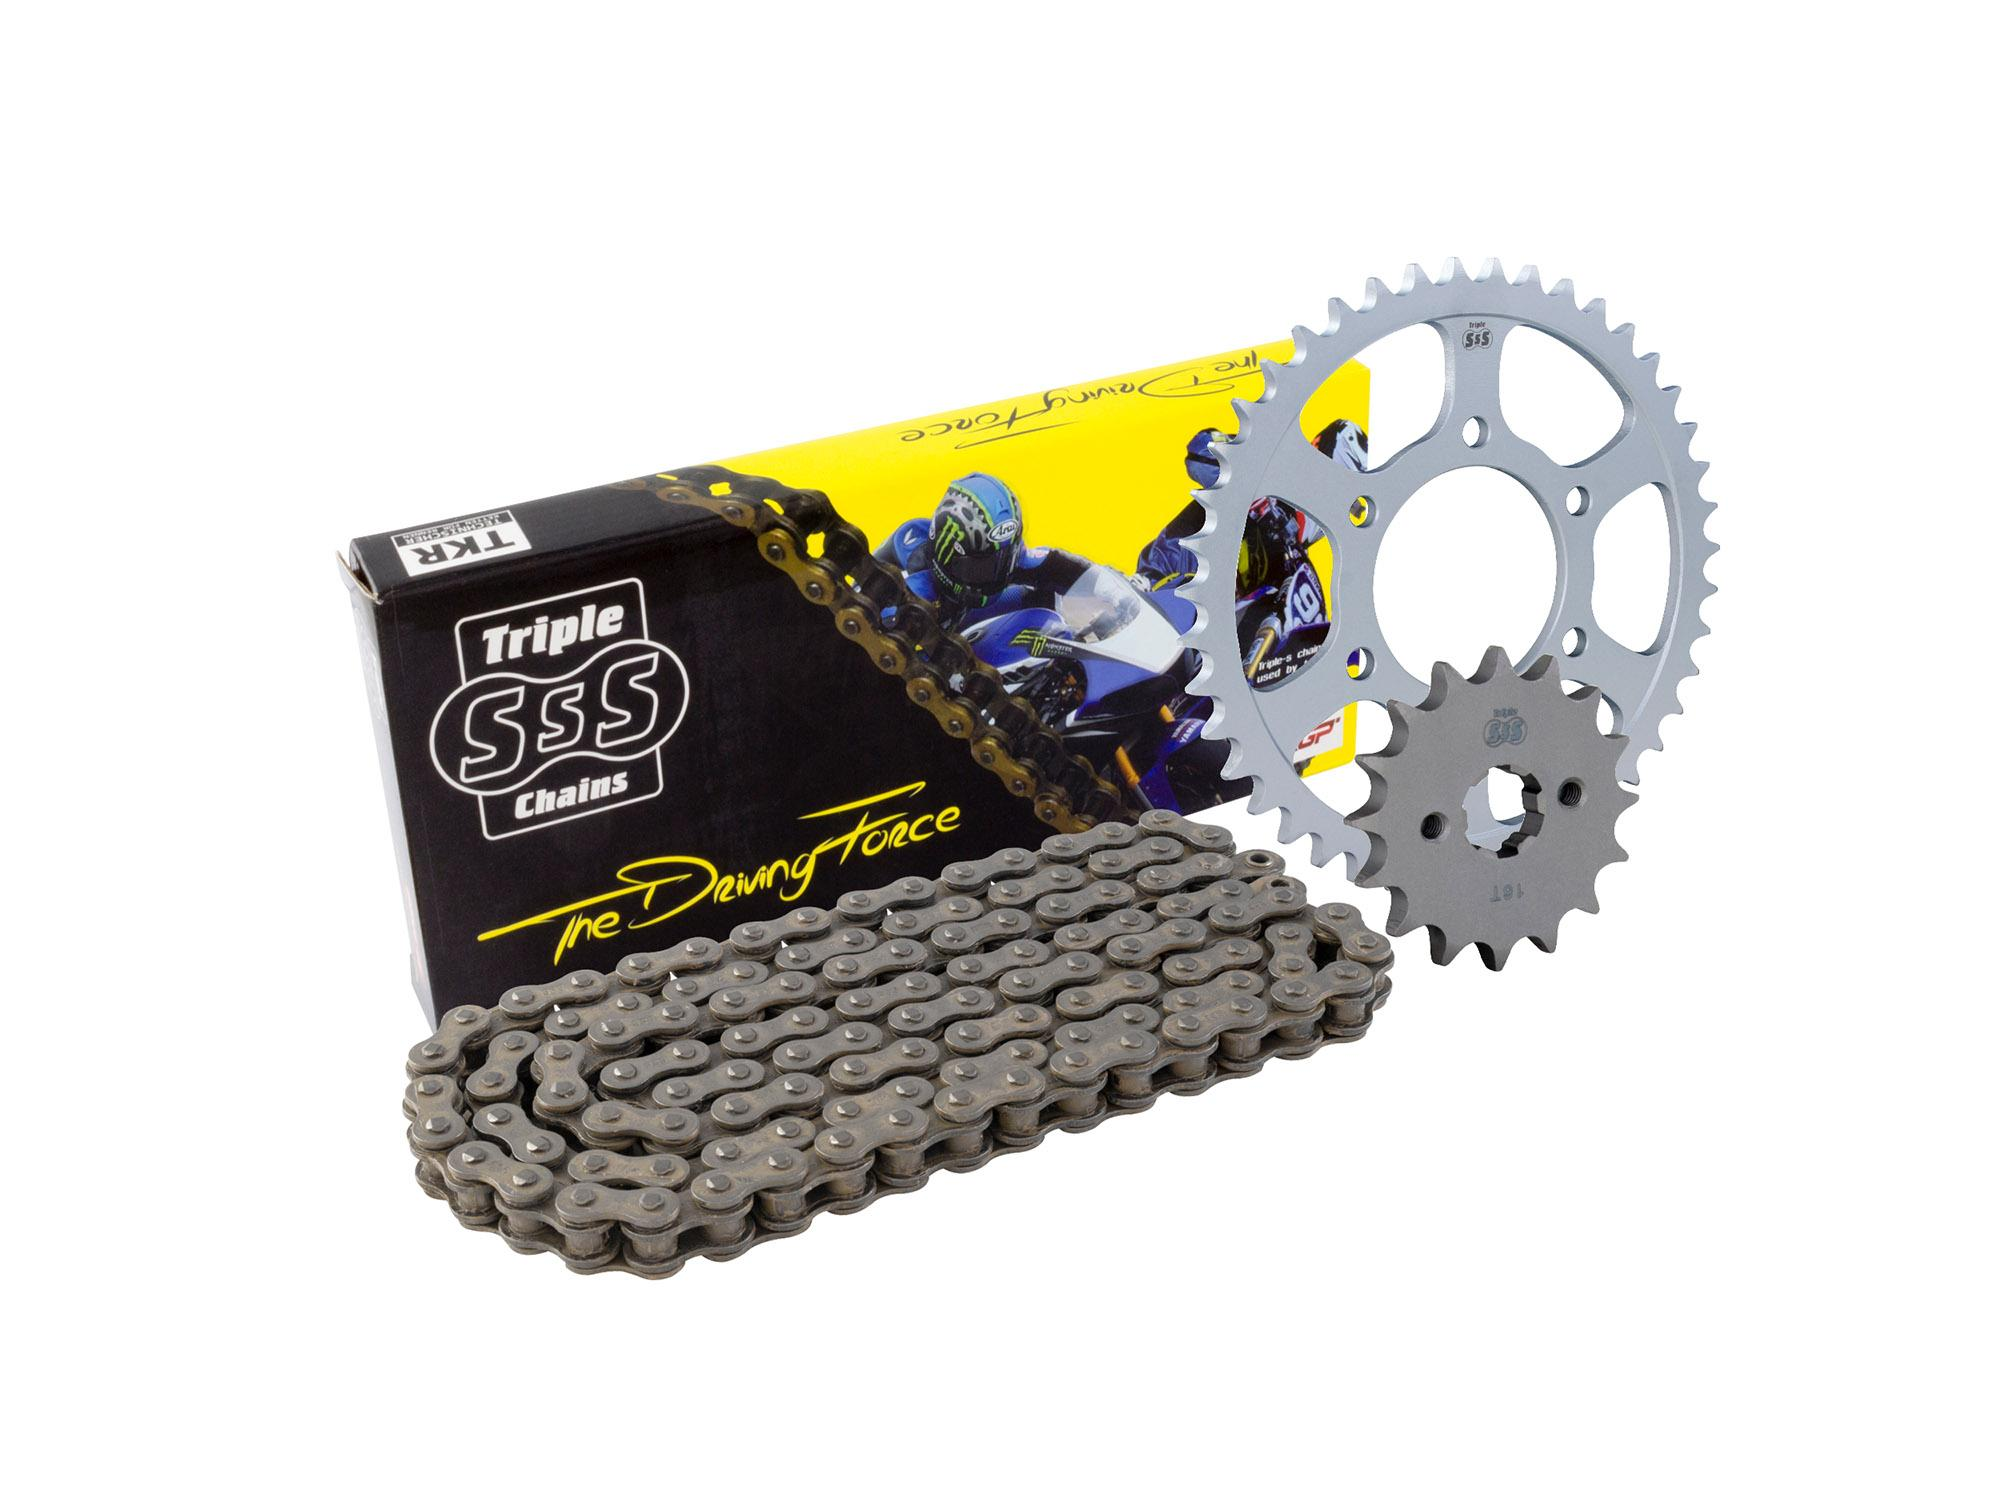 Kawasaki EN500 Vulcan C1-C10 C6F-C9F 96-09 Chain & Sprocket Kit: 16T Front, 42T Rear, HD O-Ring Black Chain 520H 110Link